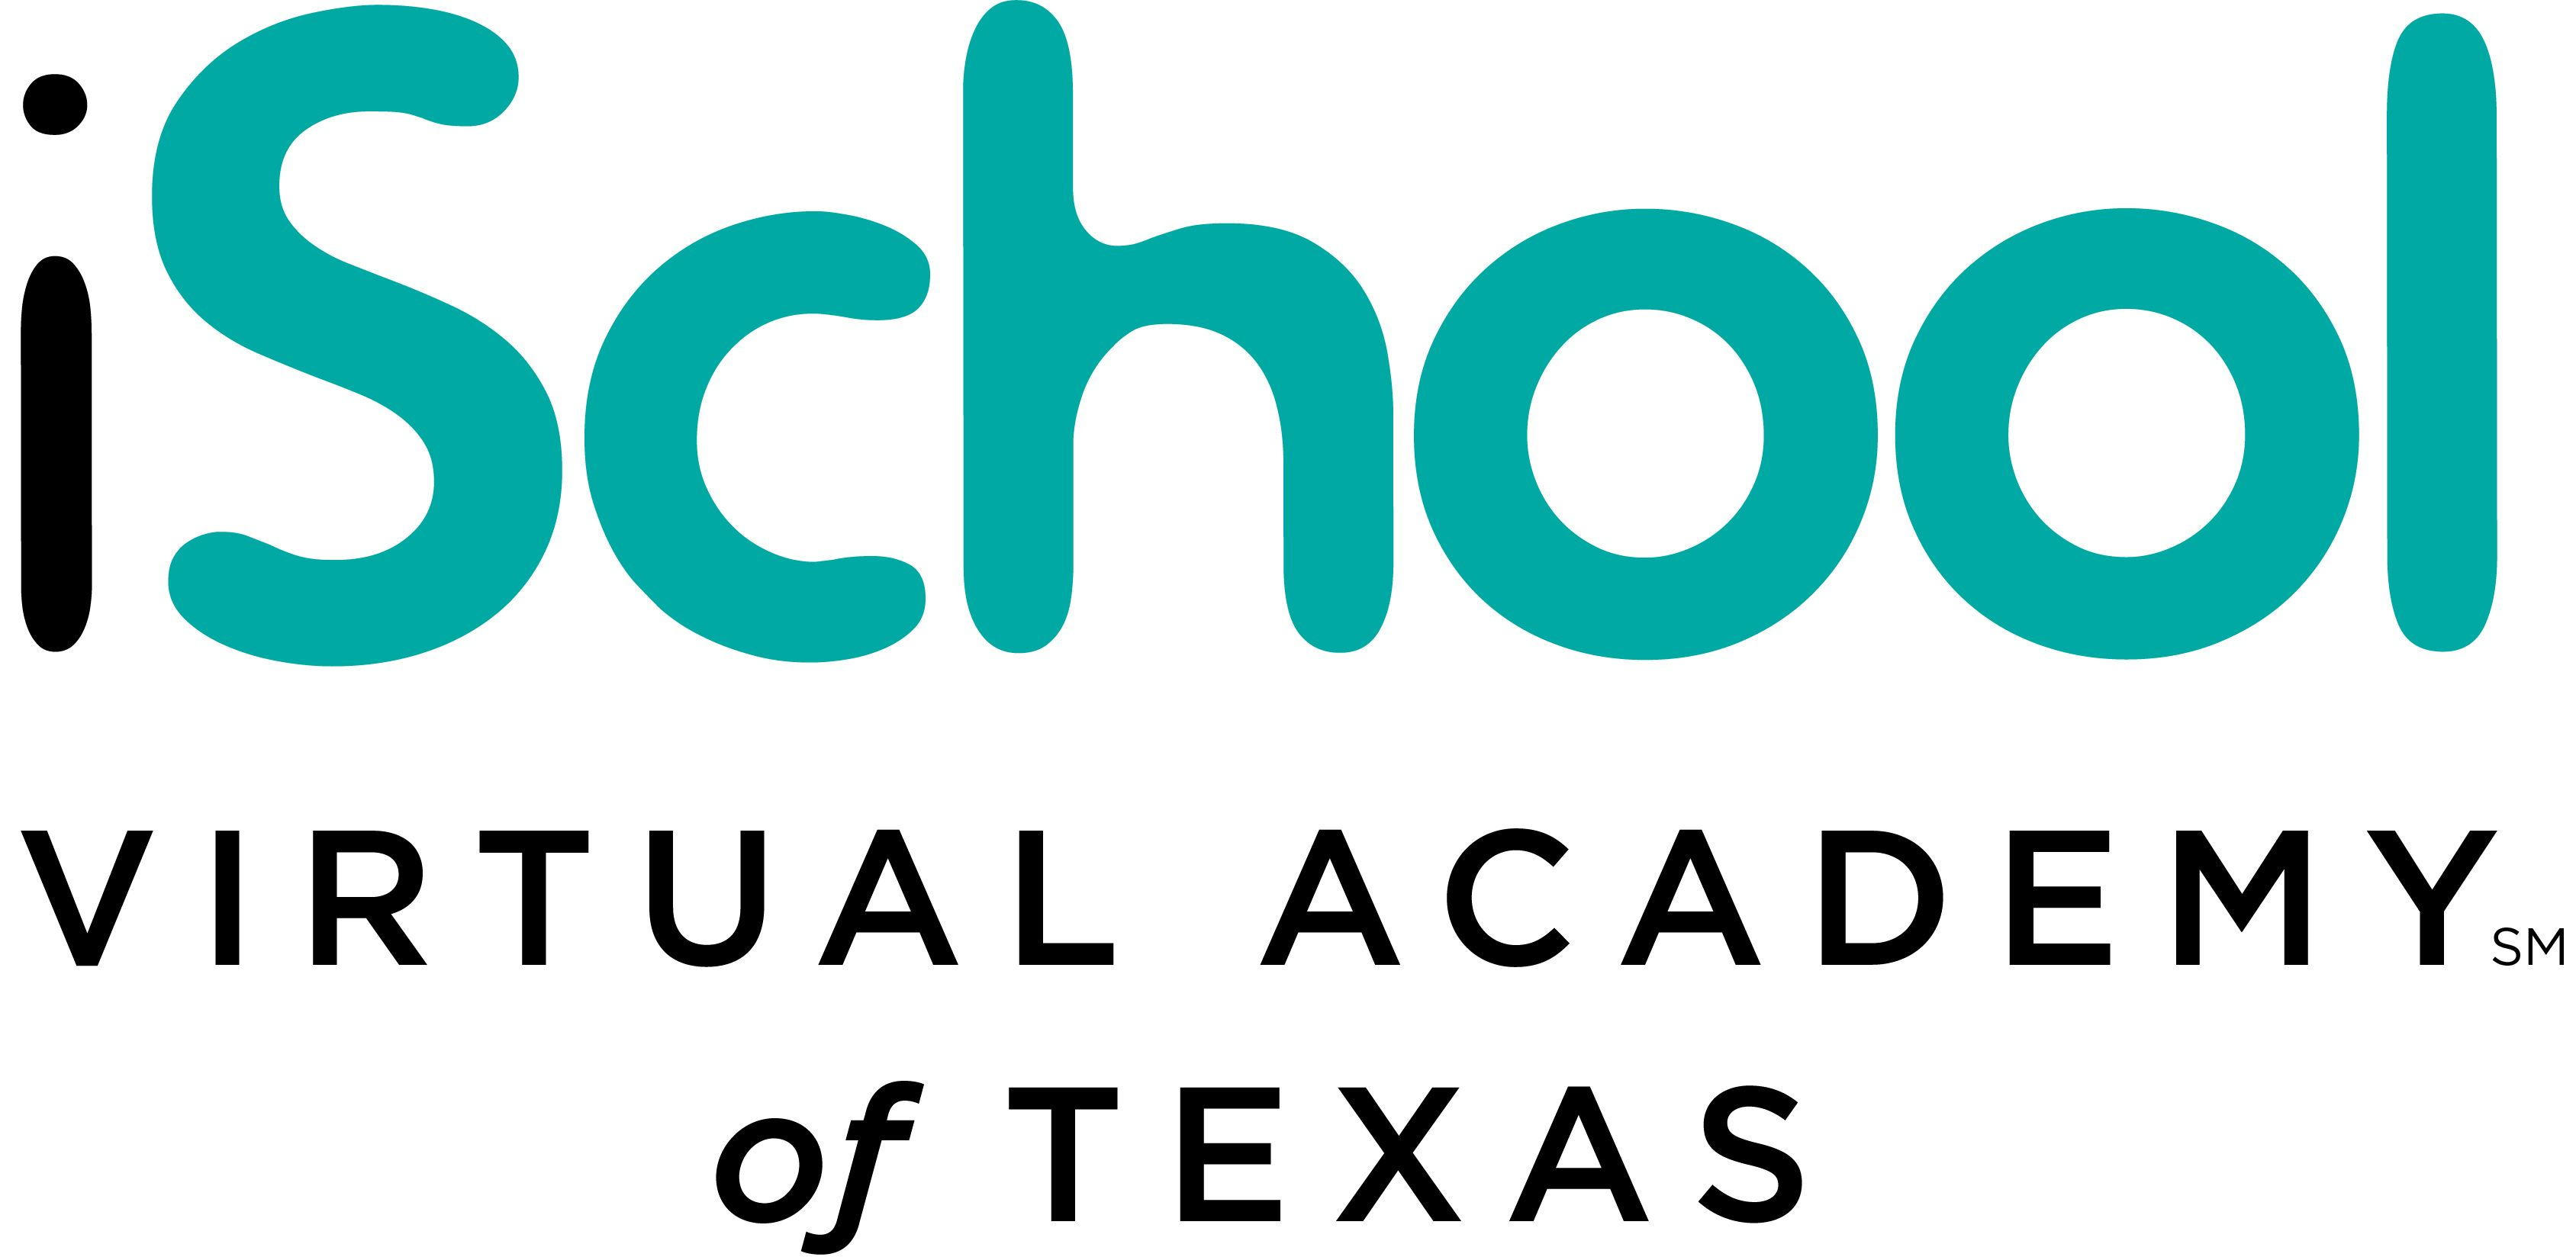 Texas Home School Online Learn More About iSchool in